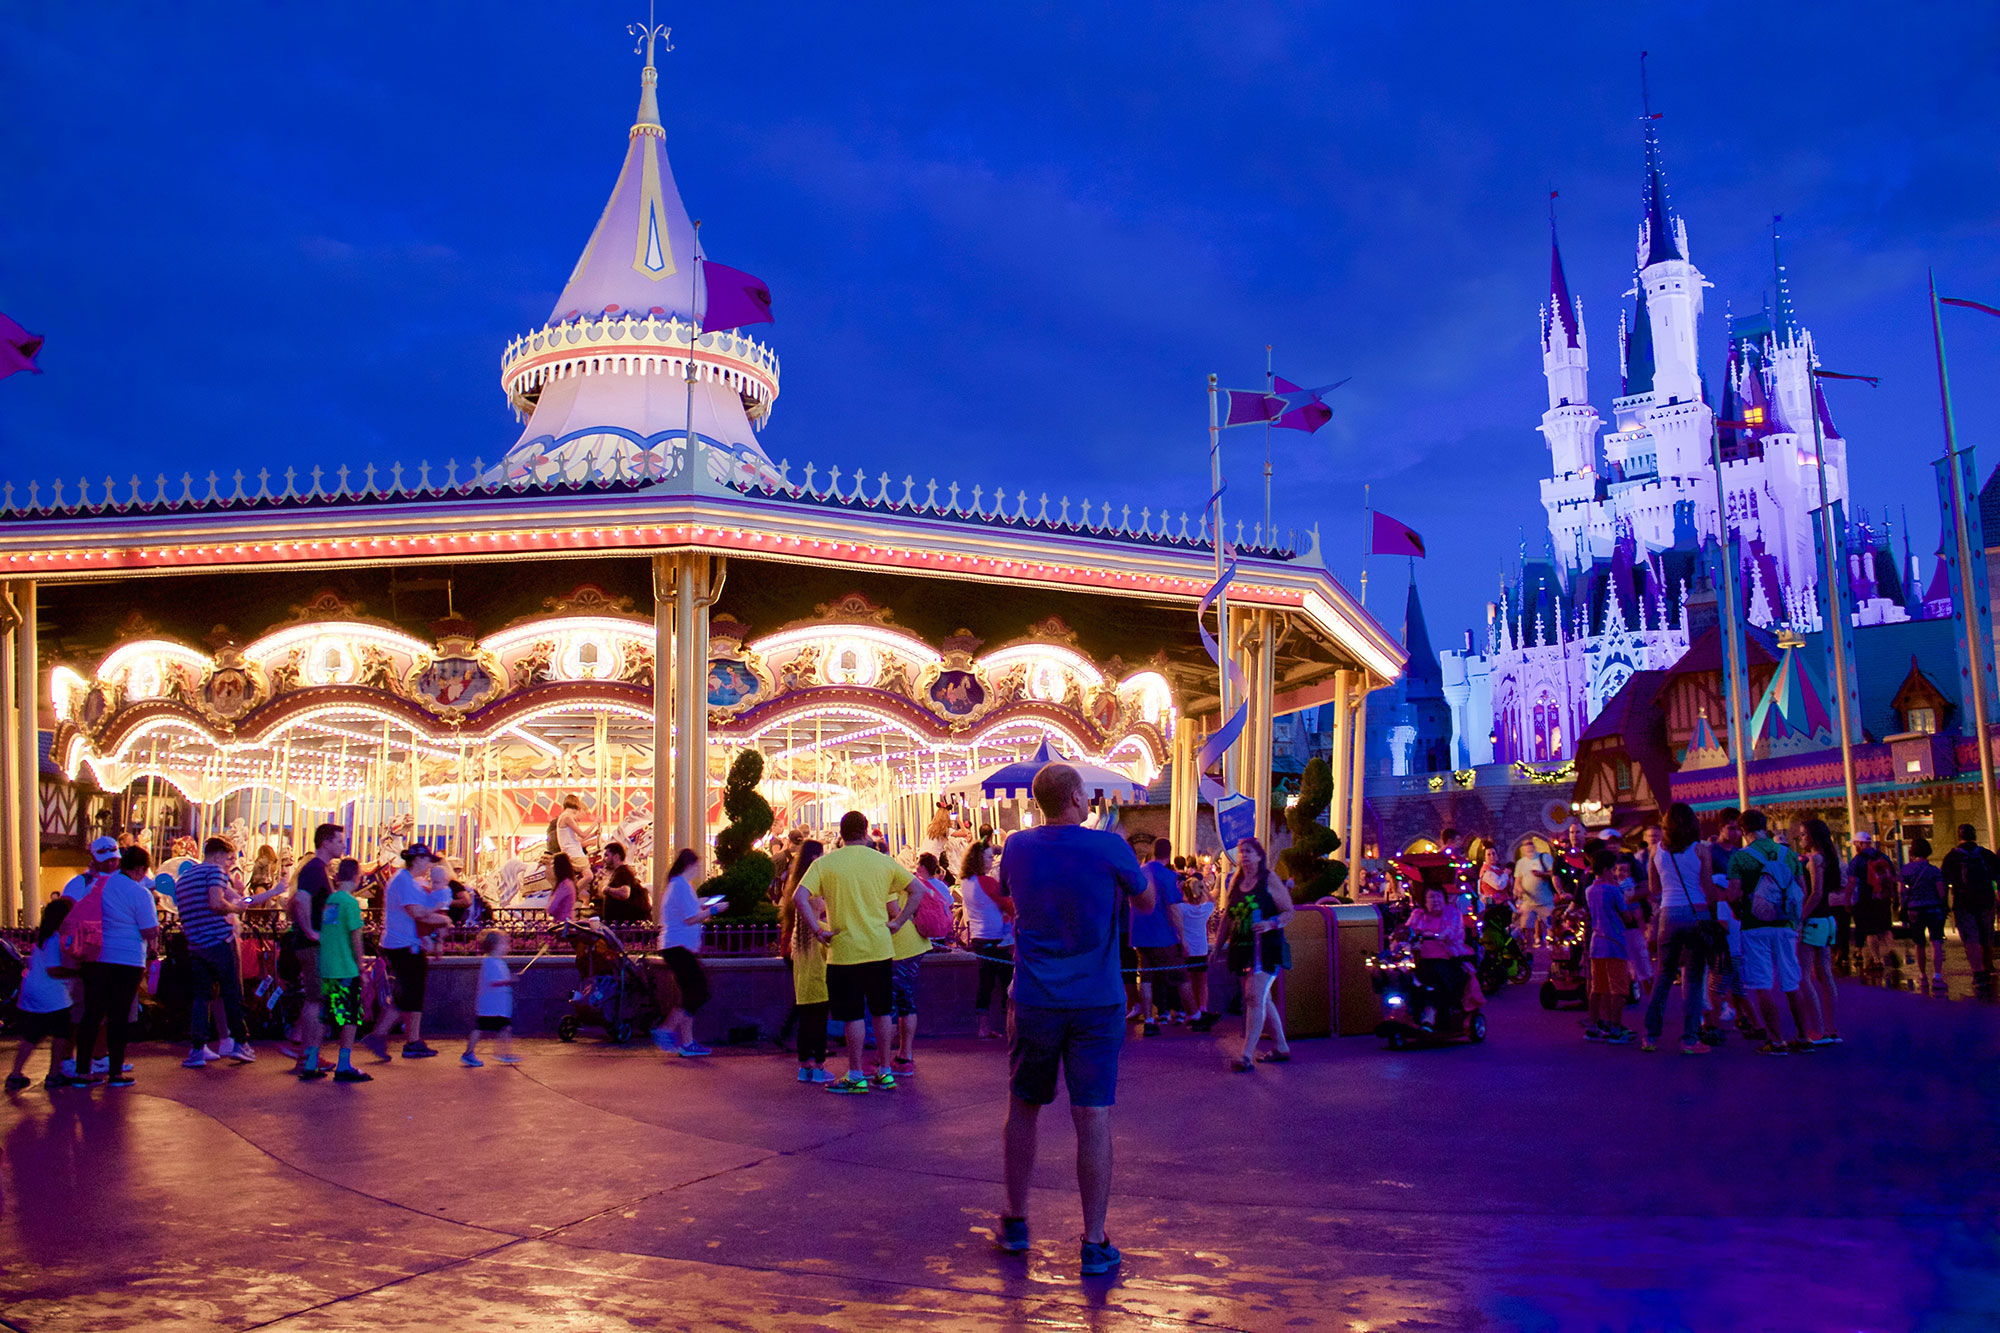 Prince Charming Regal Carrousel lights up the night behind Cinderella's Castle.